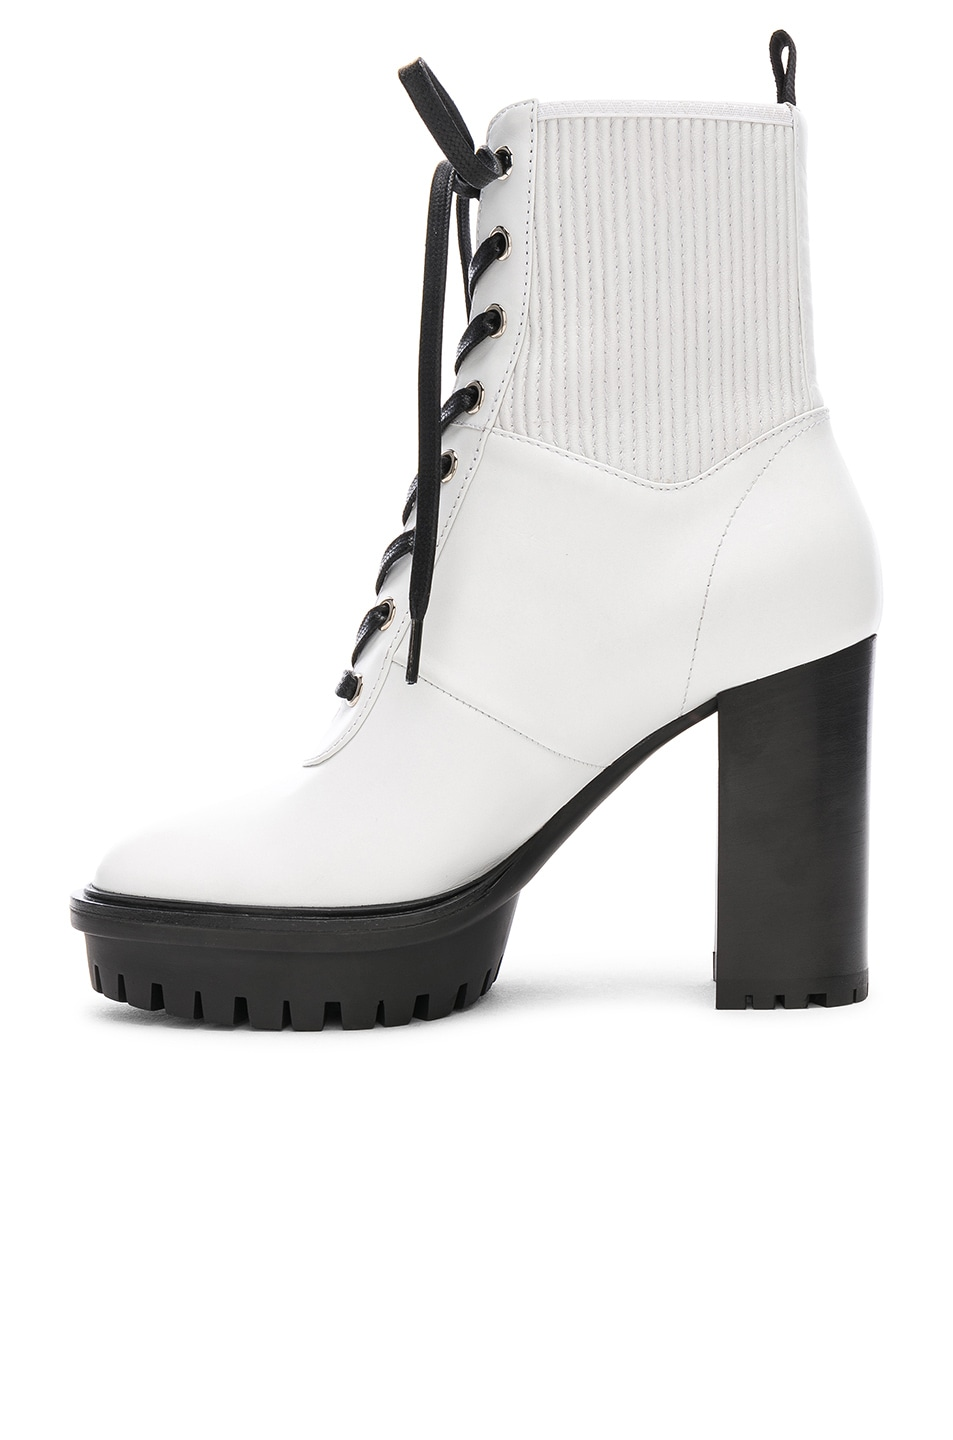 Image 5 of Gianvito Rossi Leather & Eco Stretch Martis Platform Ankle Boots in White